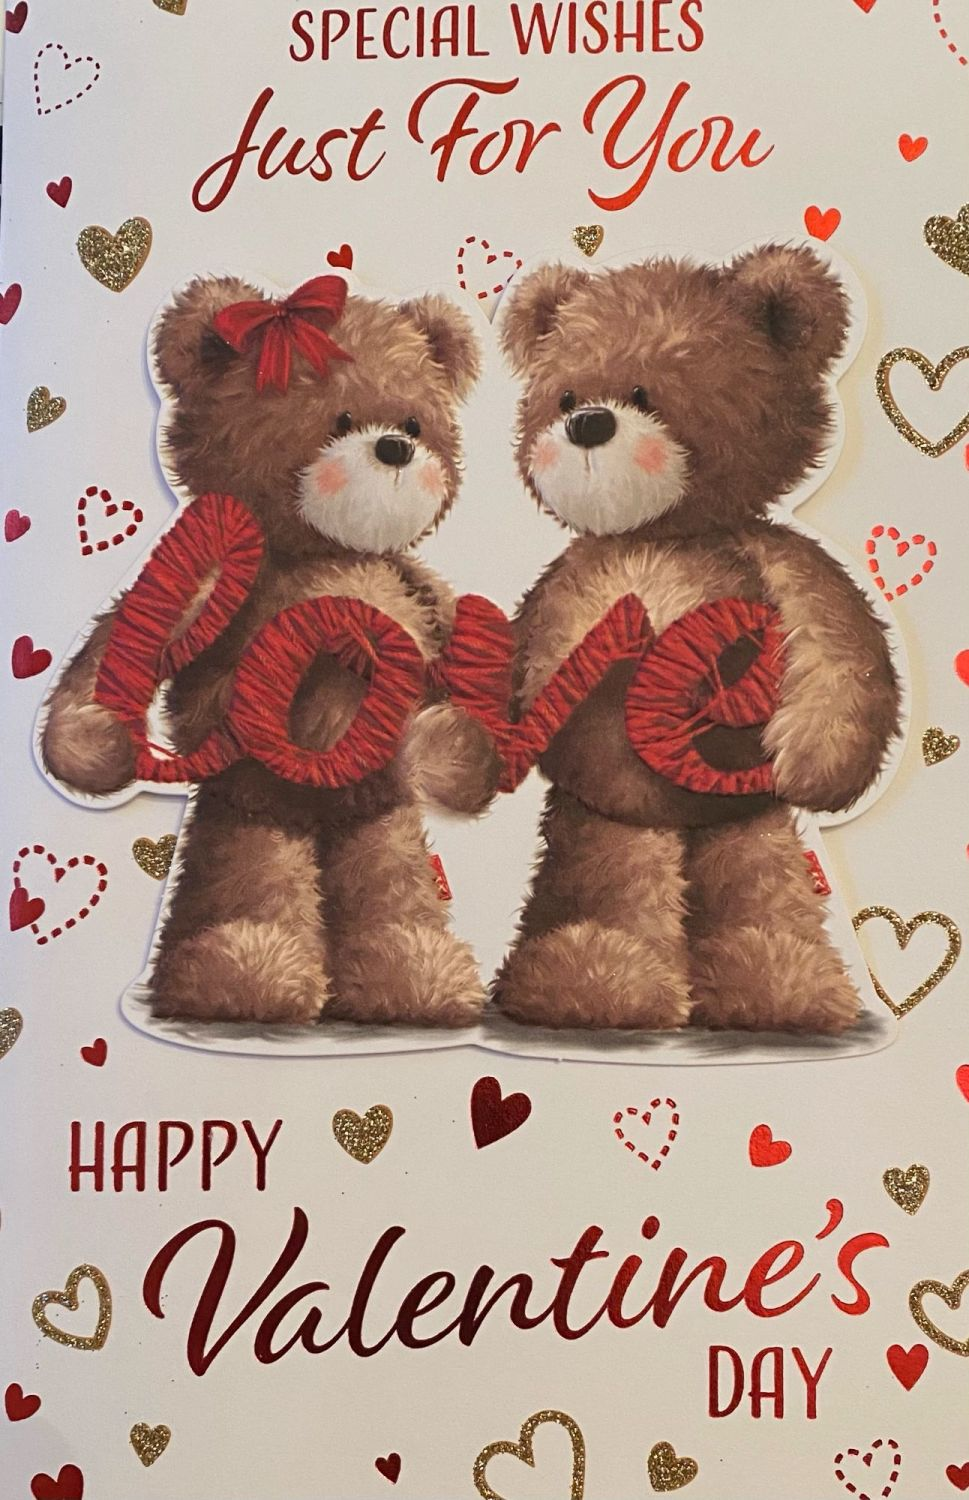 Special Wishes Just For You Happy Valentine's Day - Card